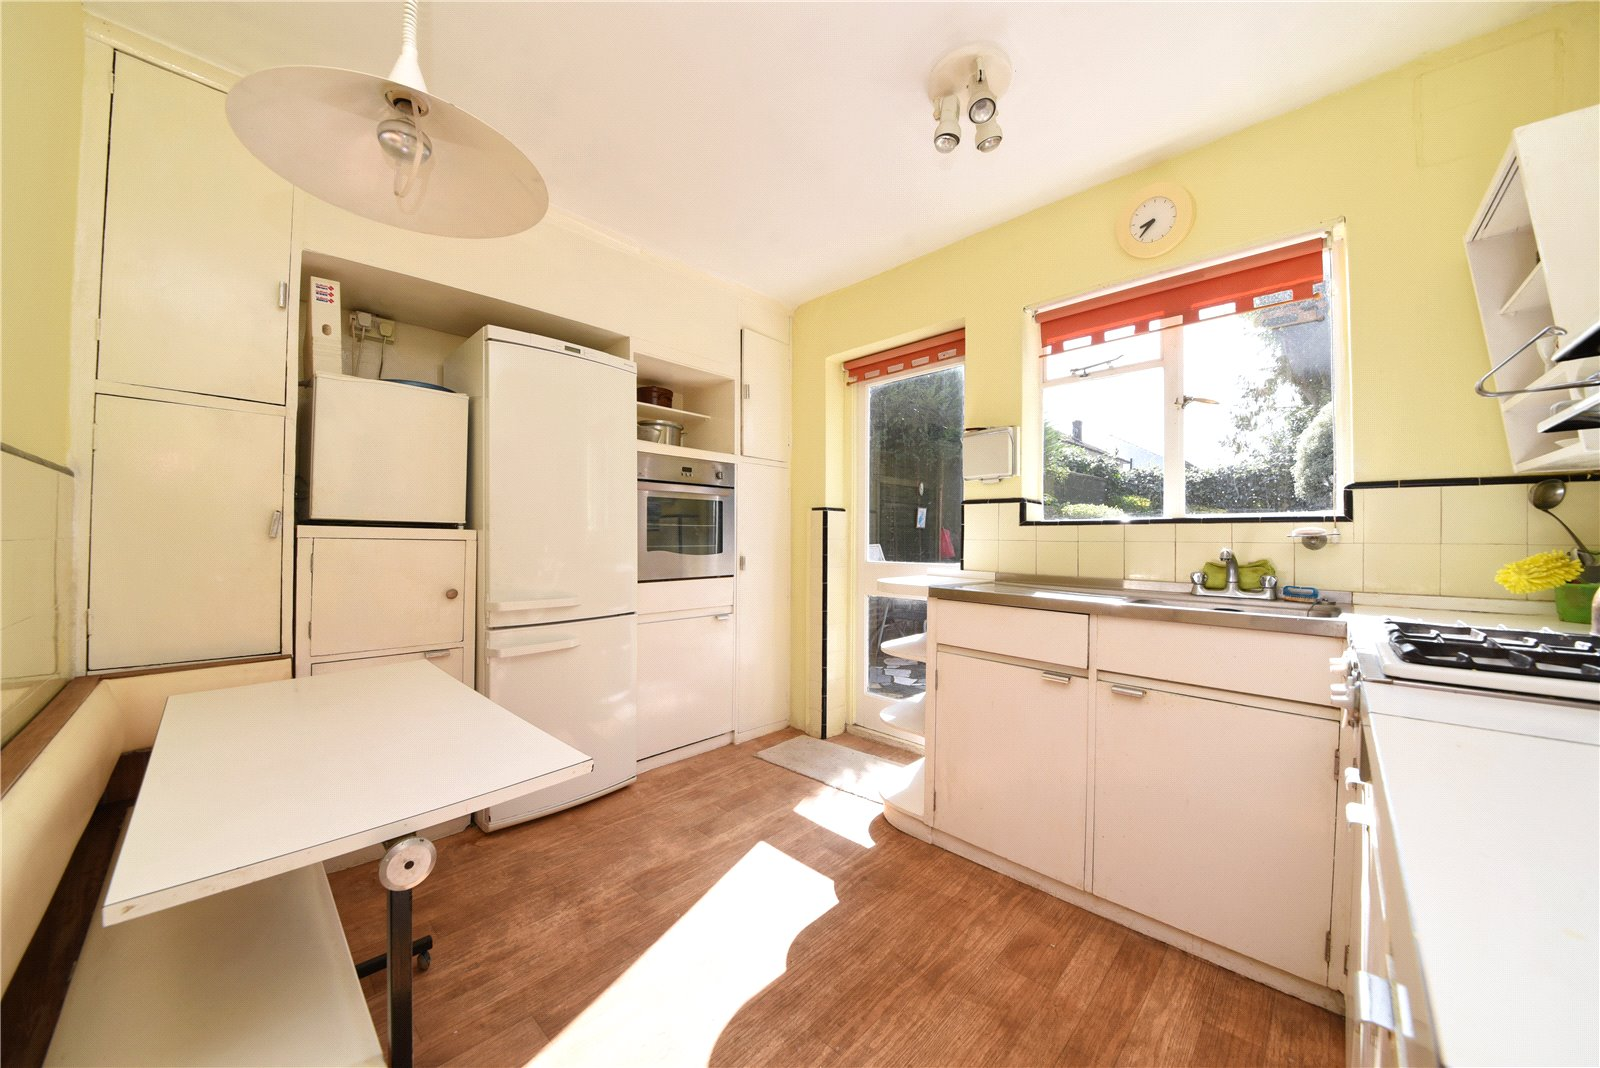 3 bed house for sale in West Finchley, N3 1PB  - Property Image 8